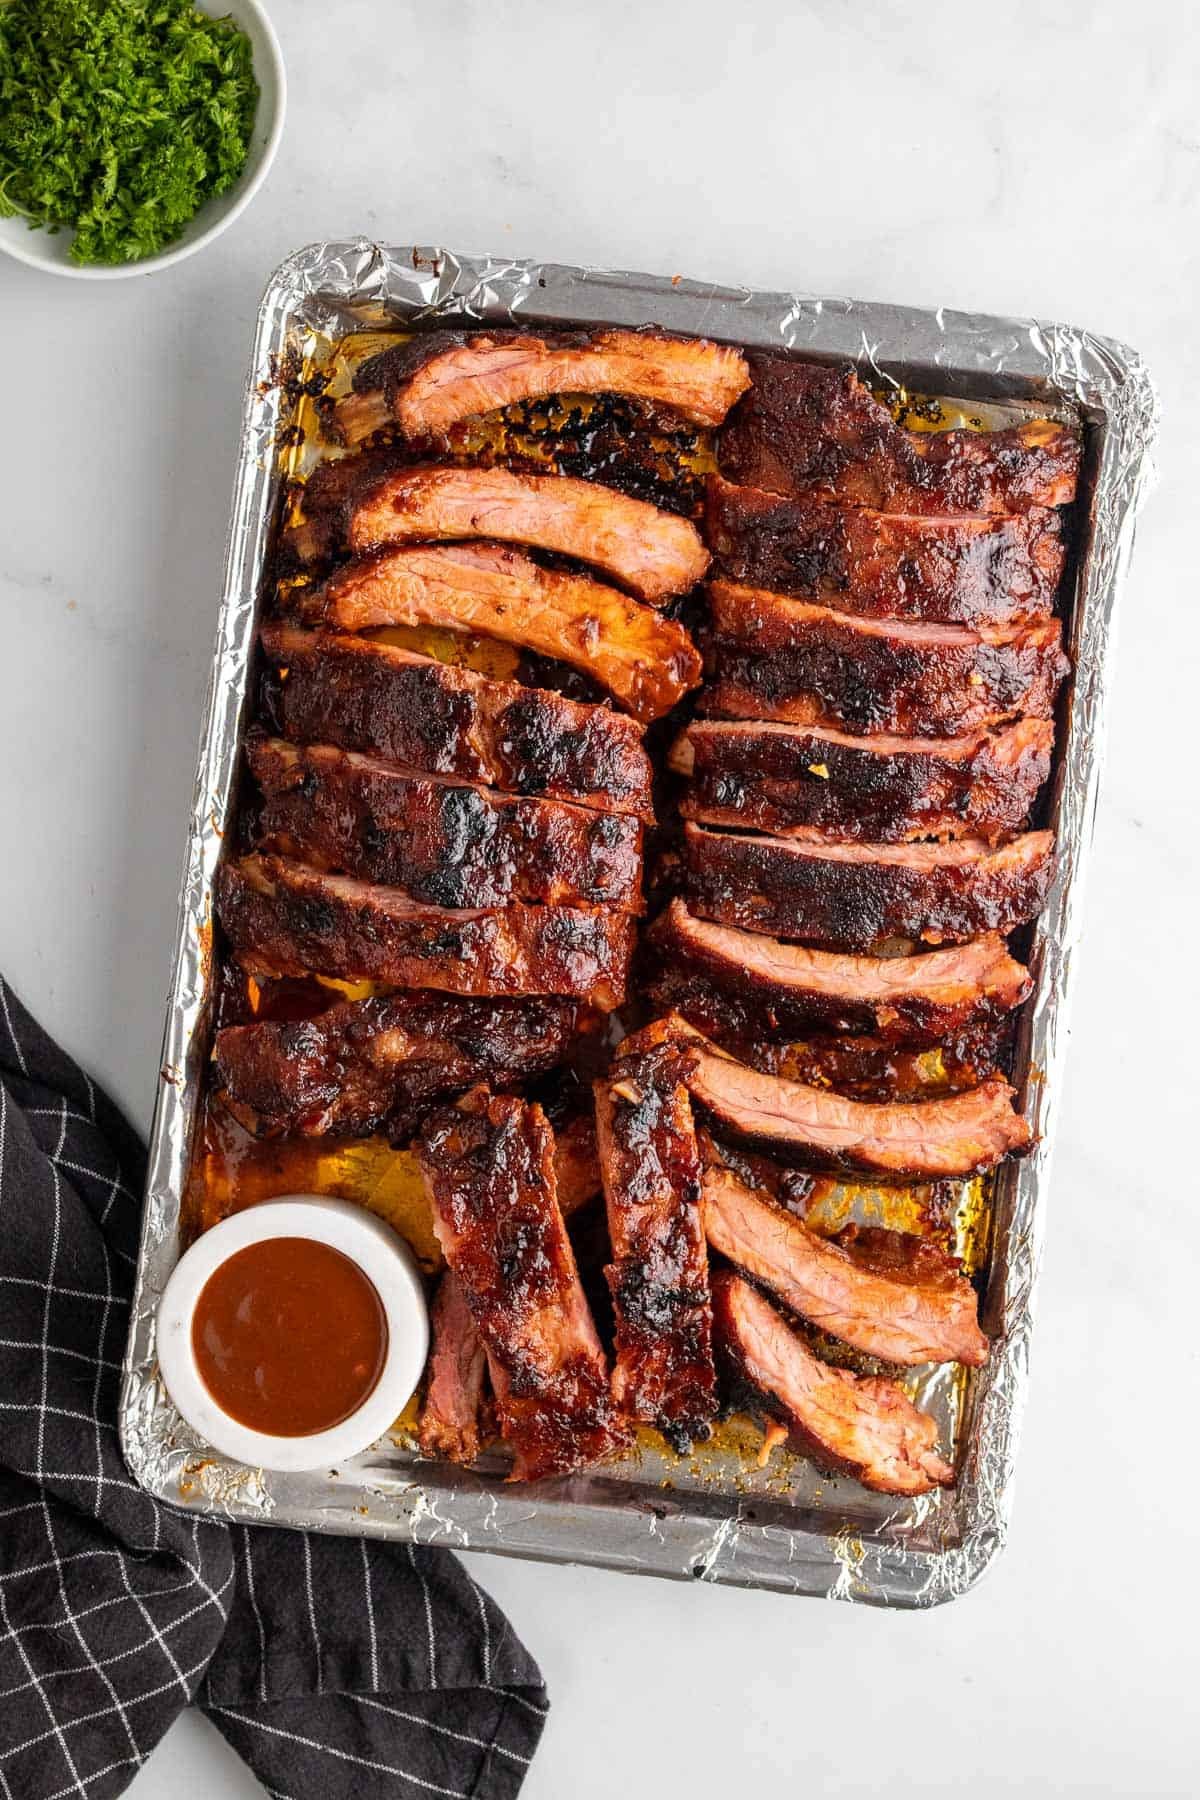 Sliced ribs on a baking sheet with a ramekin of barbeque sauce